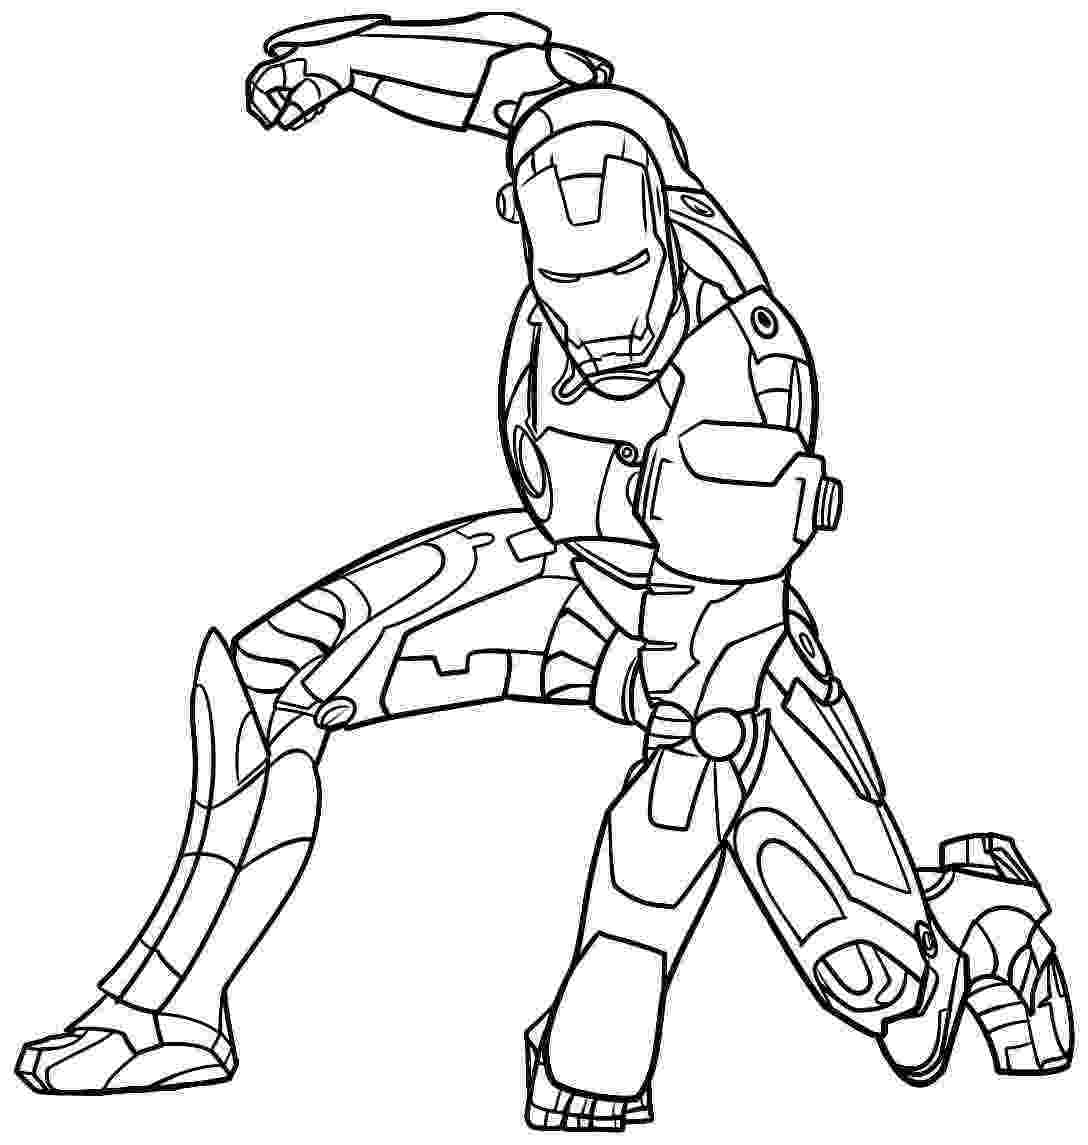 iron man printable images free printable iron man coloring pages for kids best printable man iron images